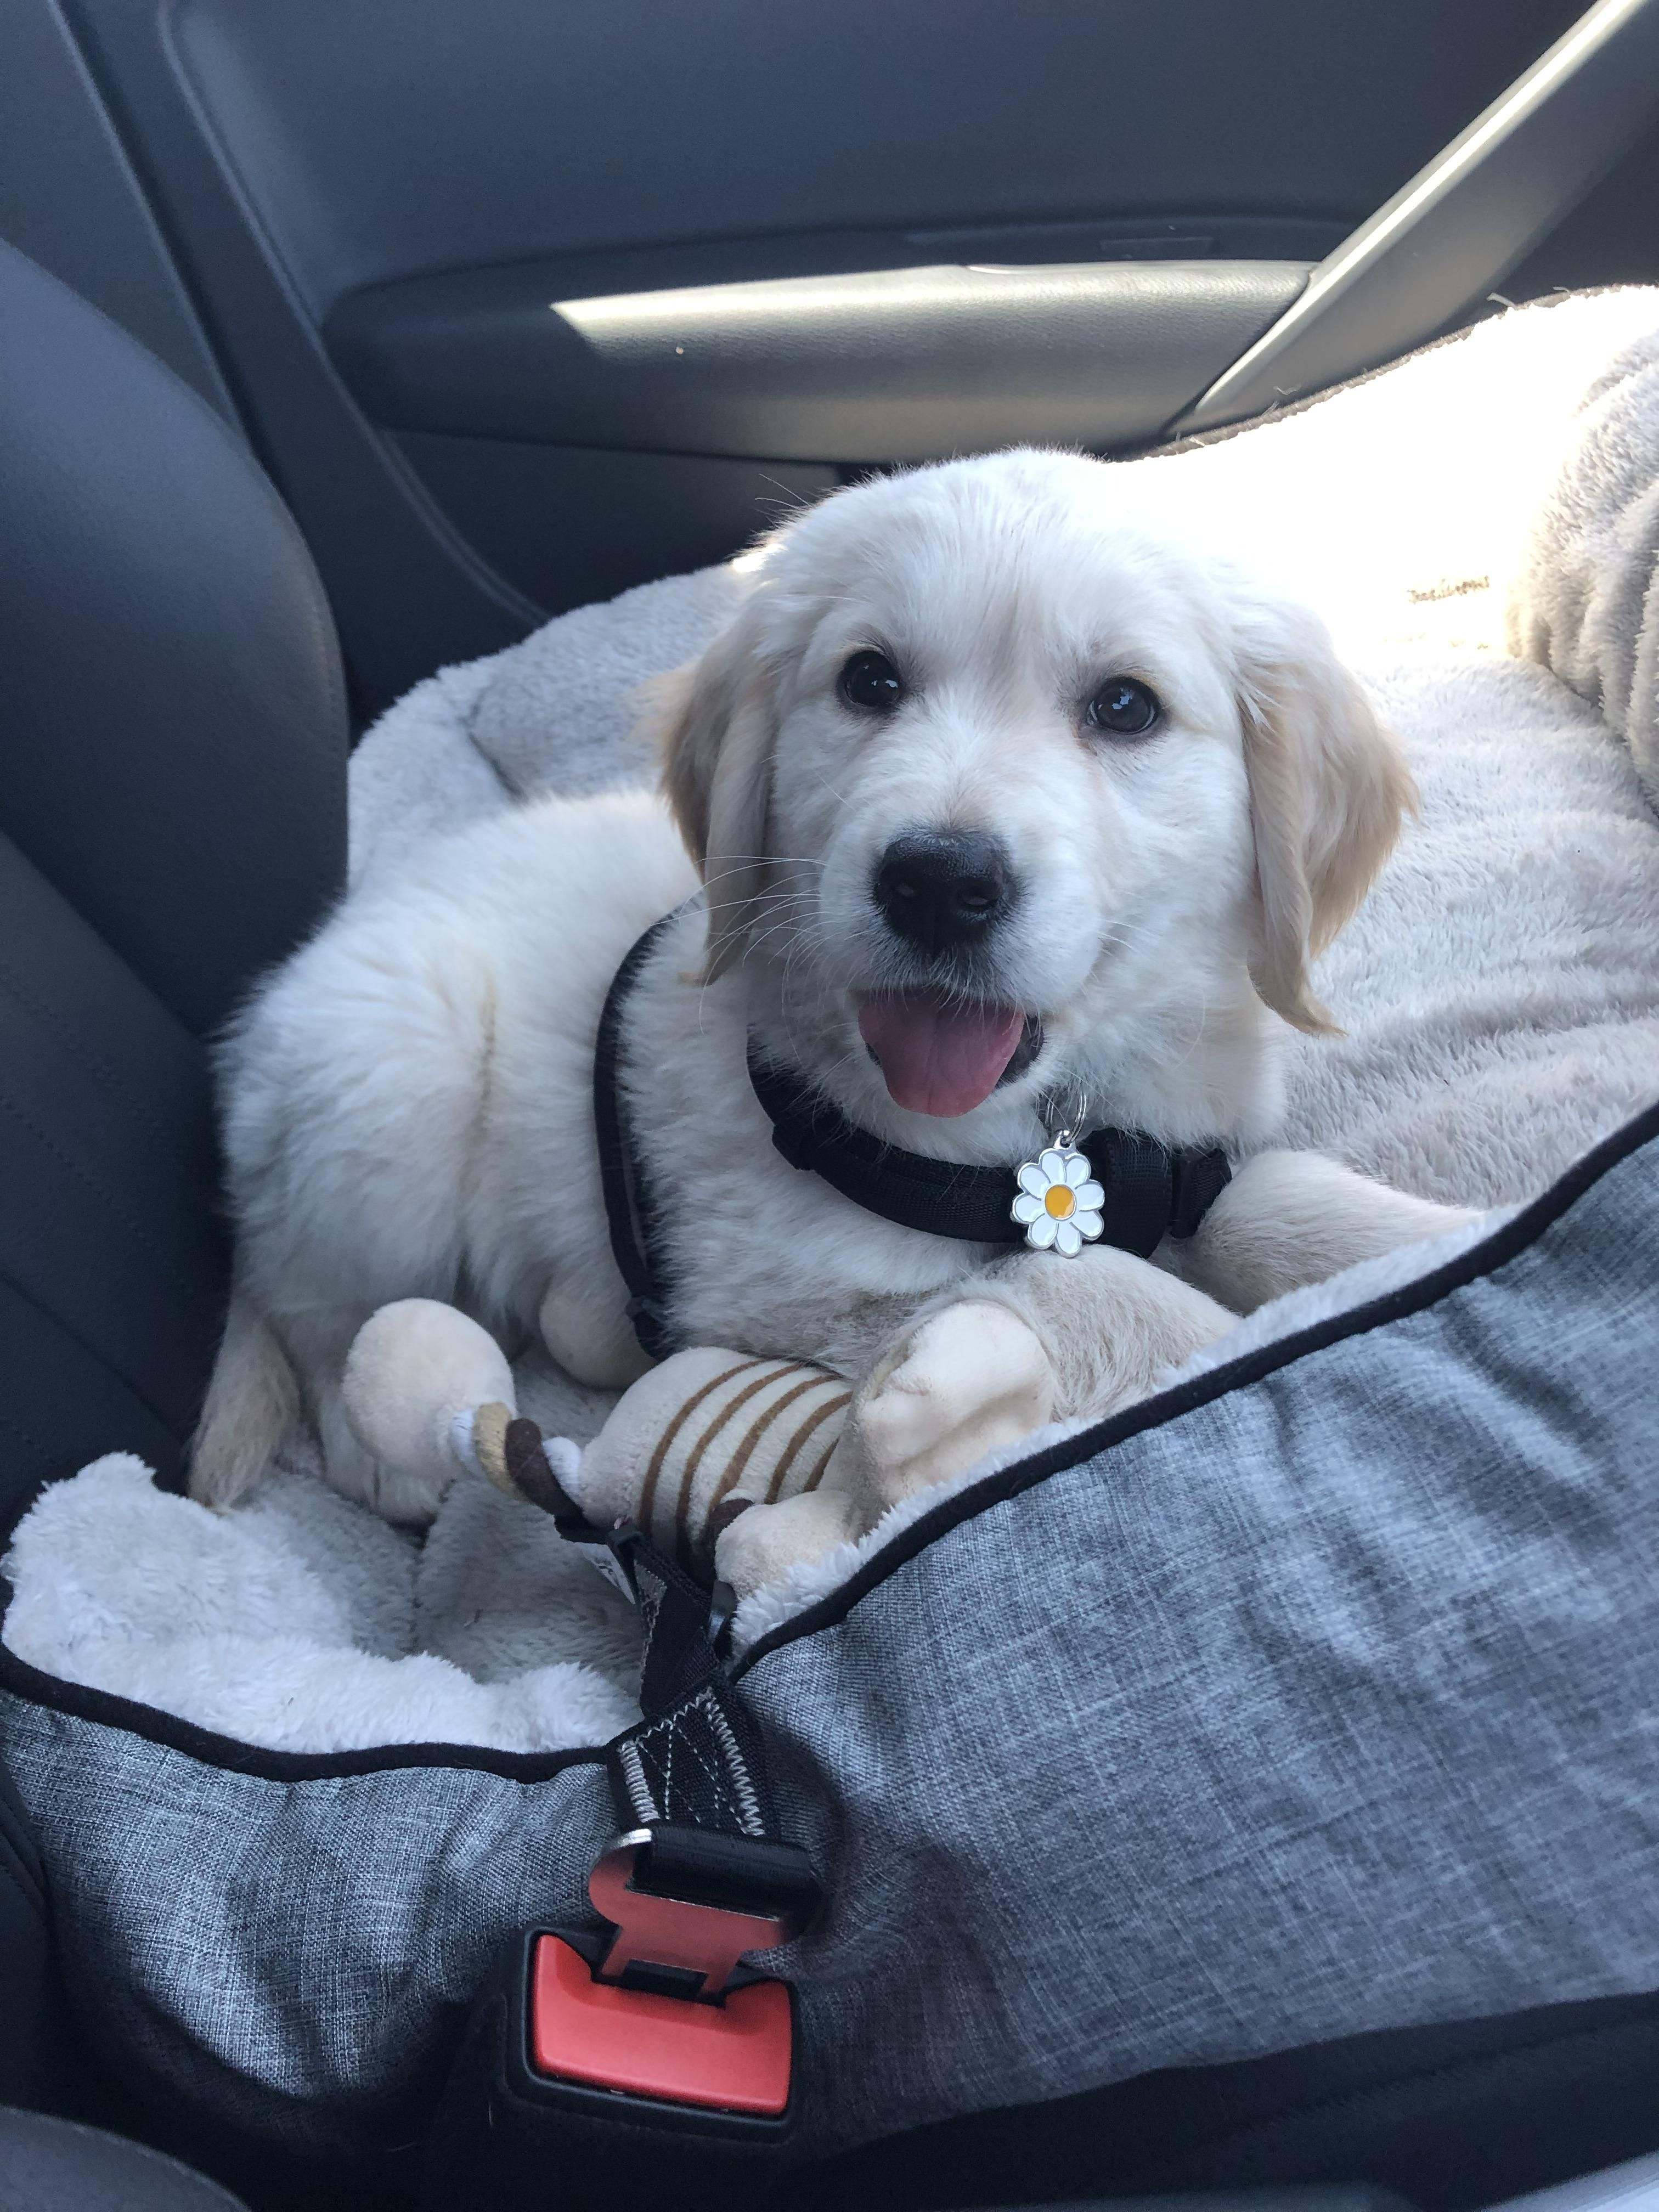 Frankie is ready for his first day at puppy school with